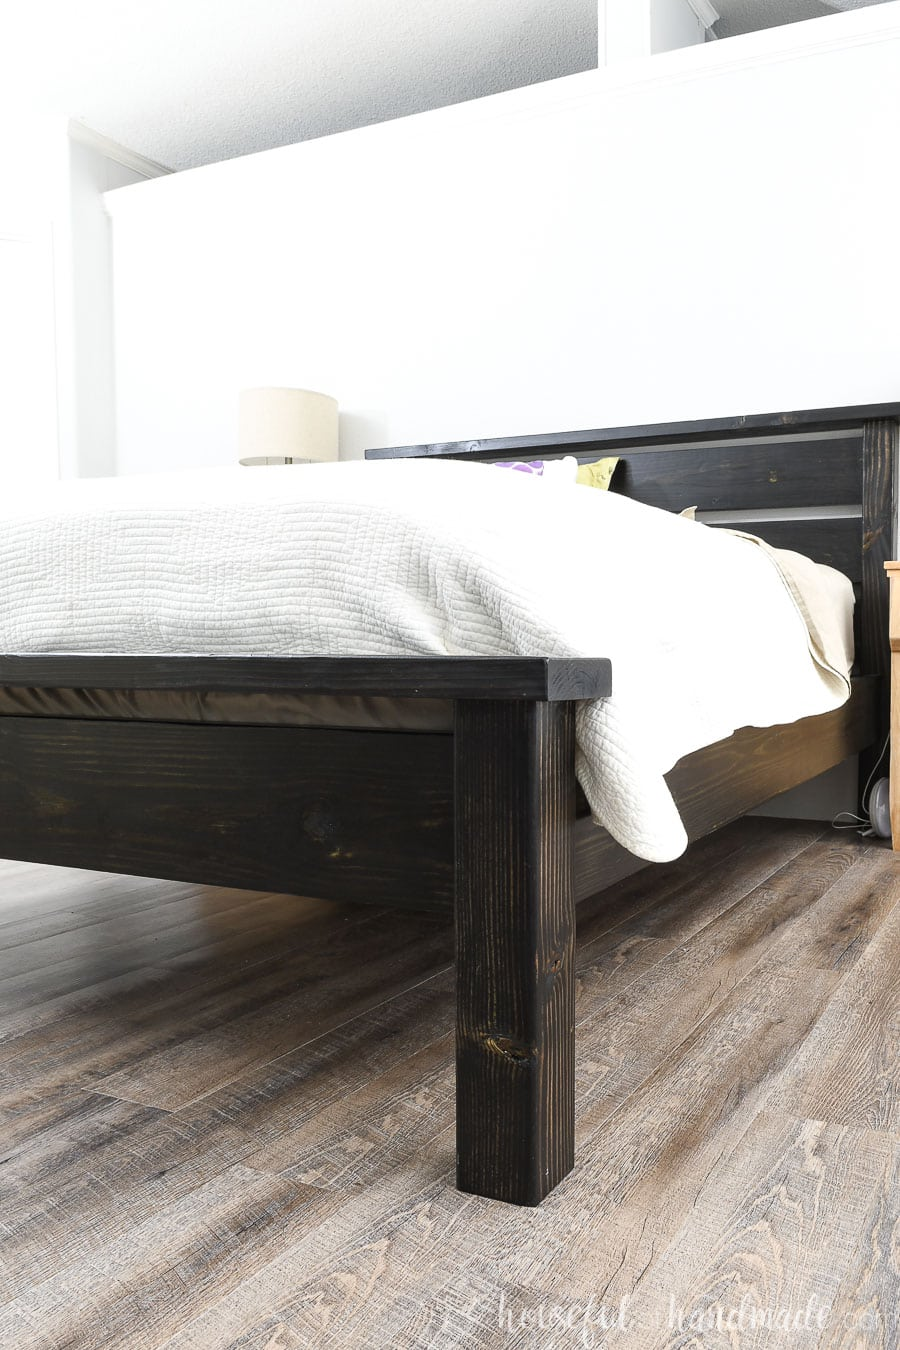 Side view of the black queen bed frame made from inexpensive lumber.